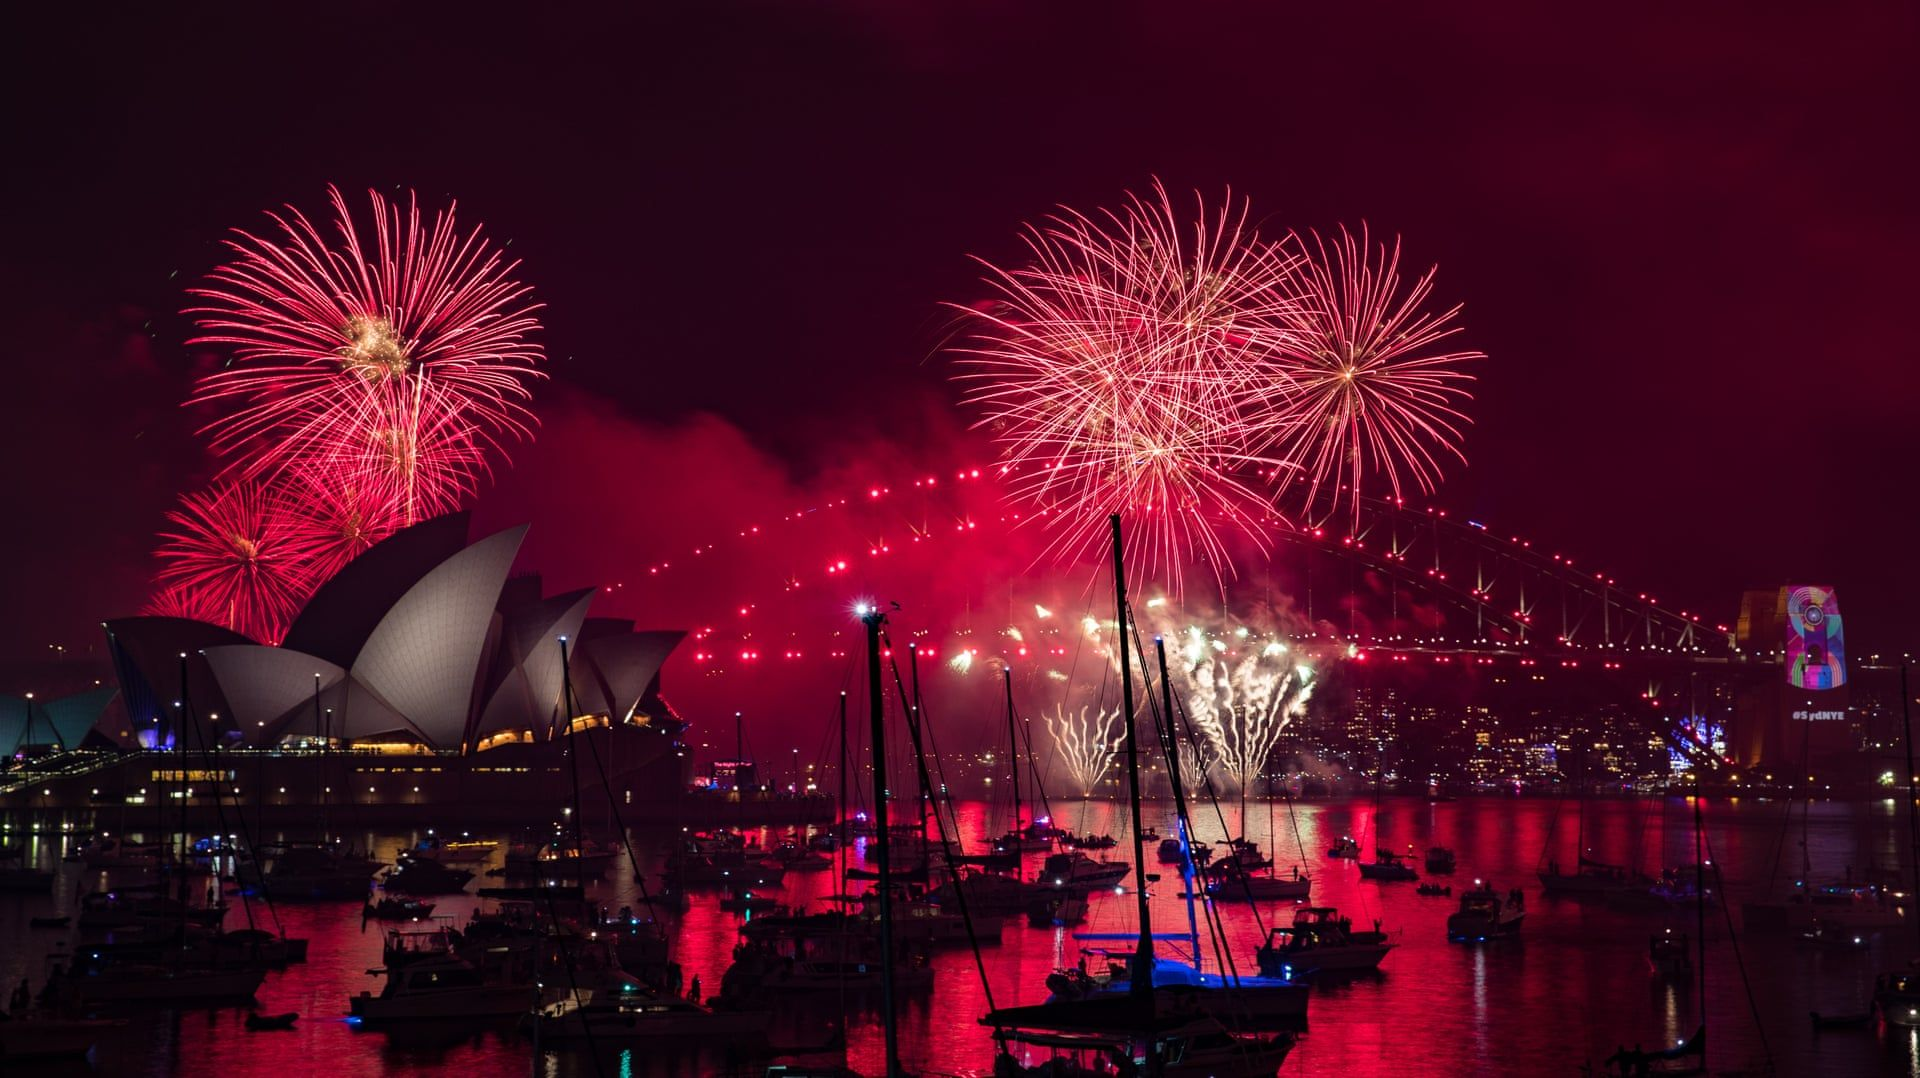 New Year's Eve around Australia fireworks ring in 2019